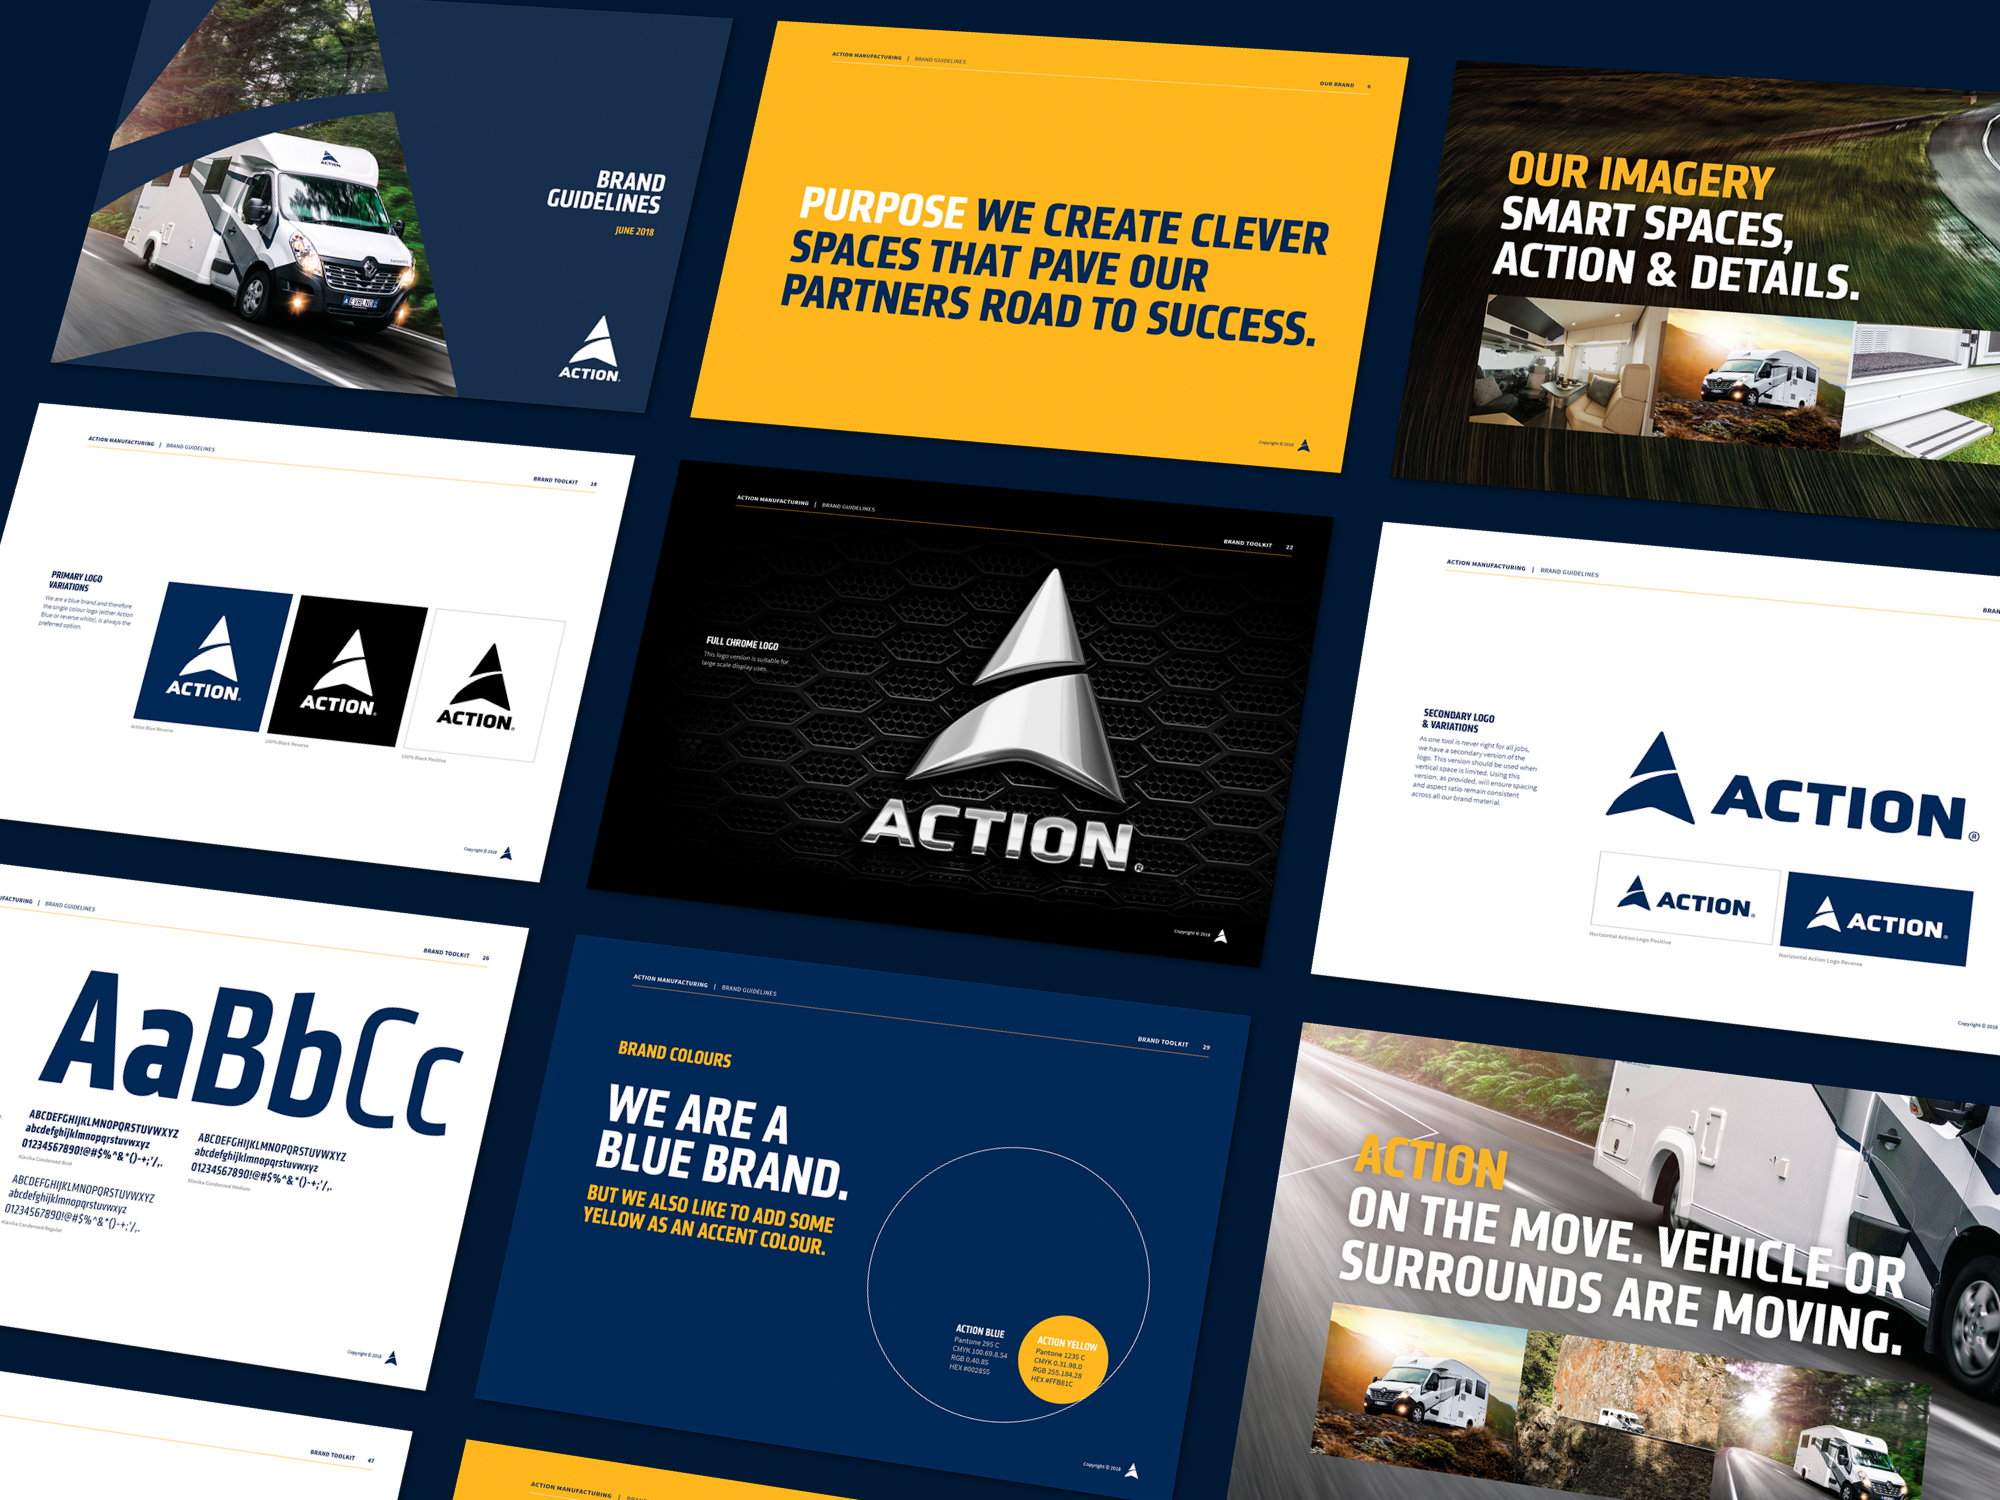 Action Manufacturing Brand Identity Design4